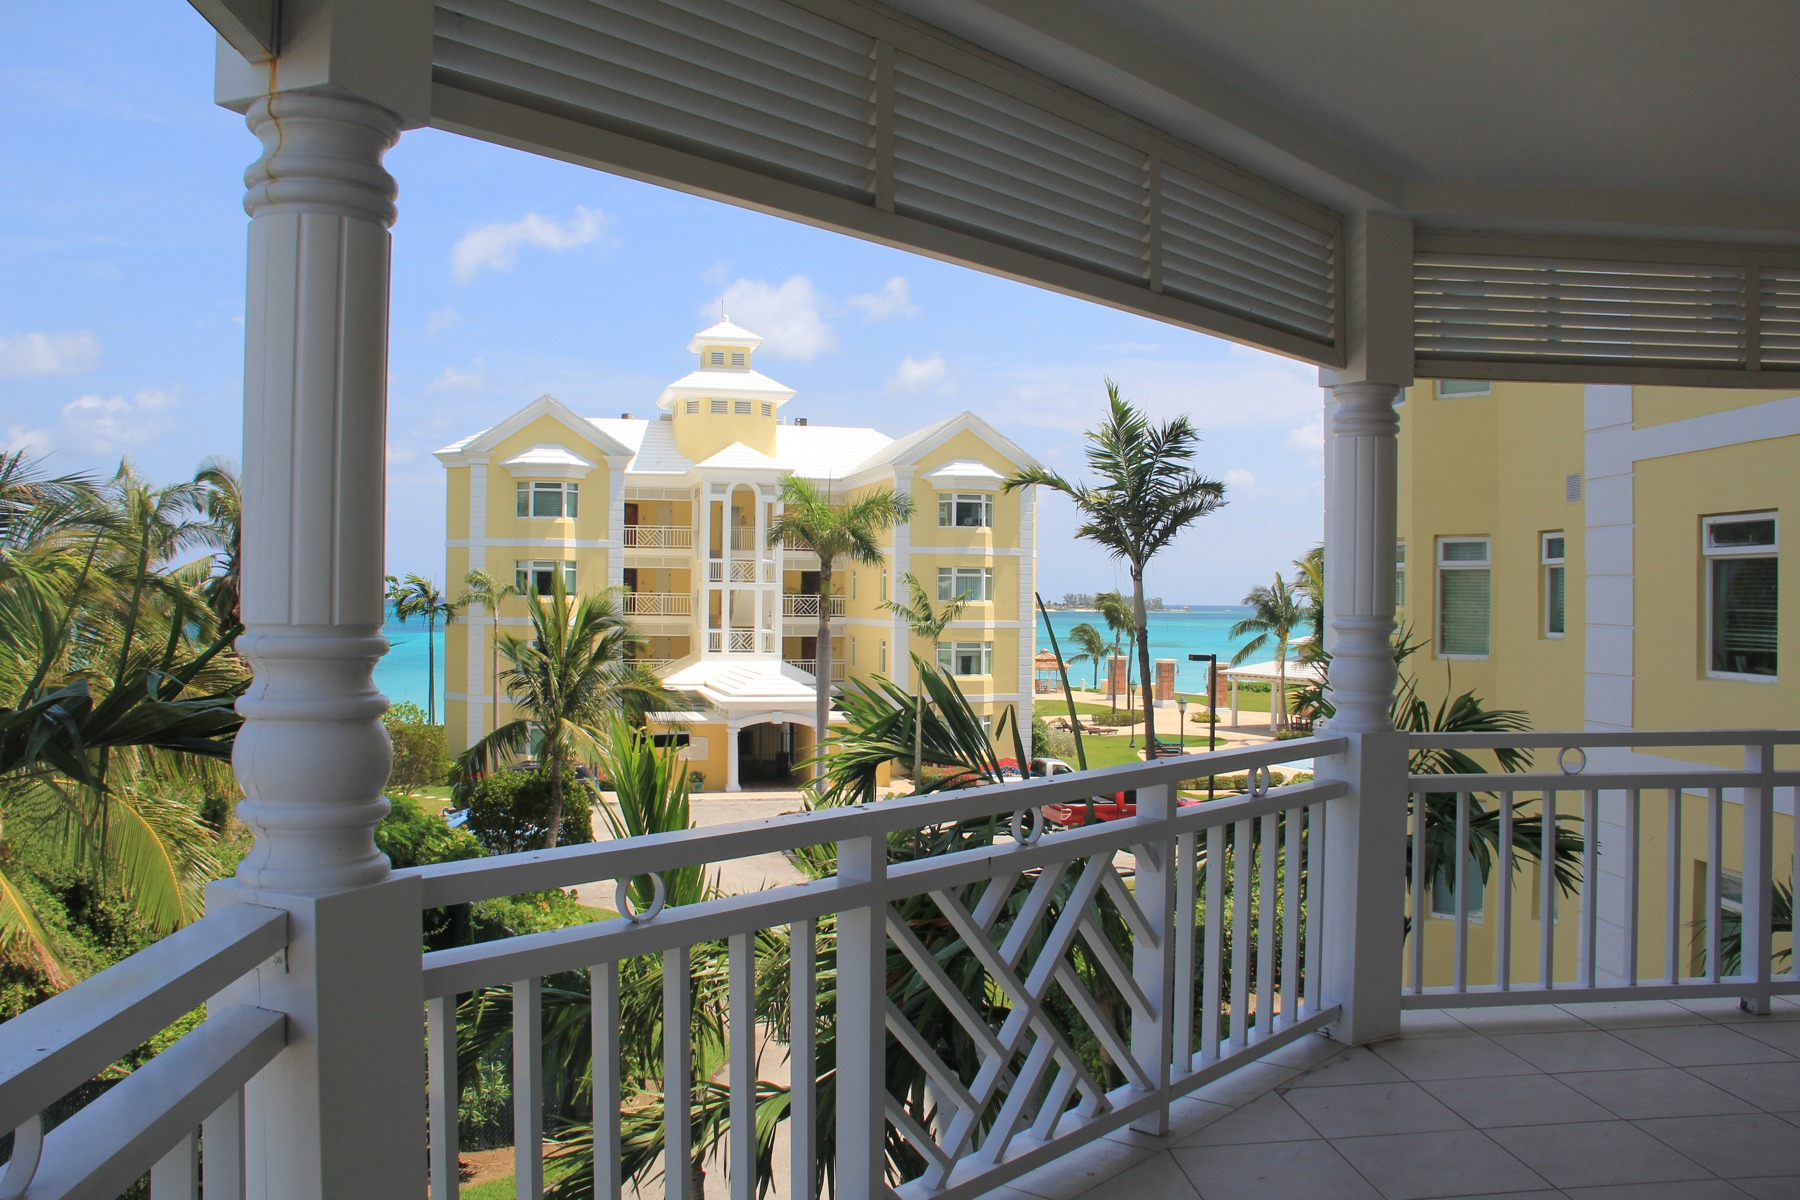 Additional photo for property listing at Bayroc #301, Cable Beach Bayroc, Cable Beach, New Providence/Nassau Bahamas